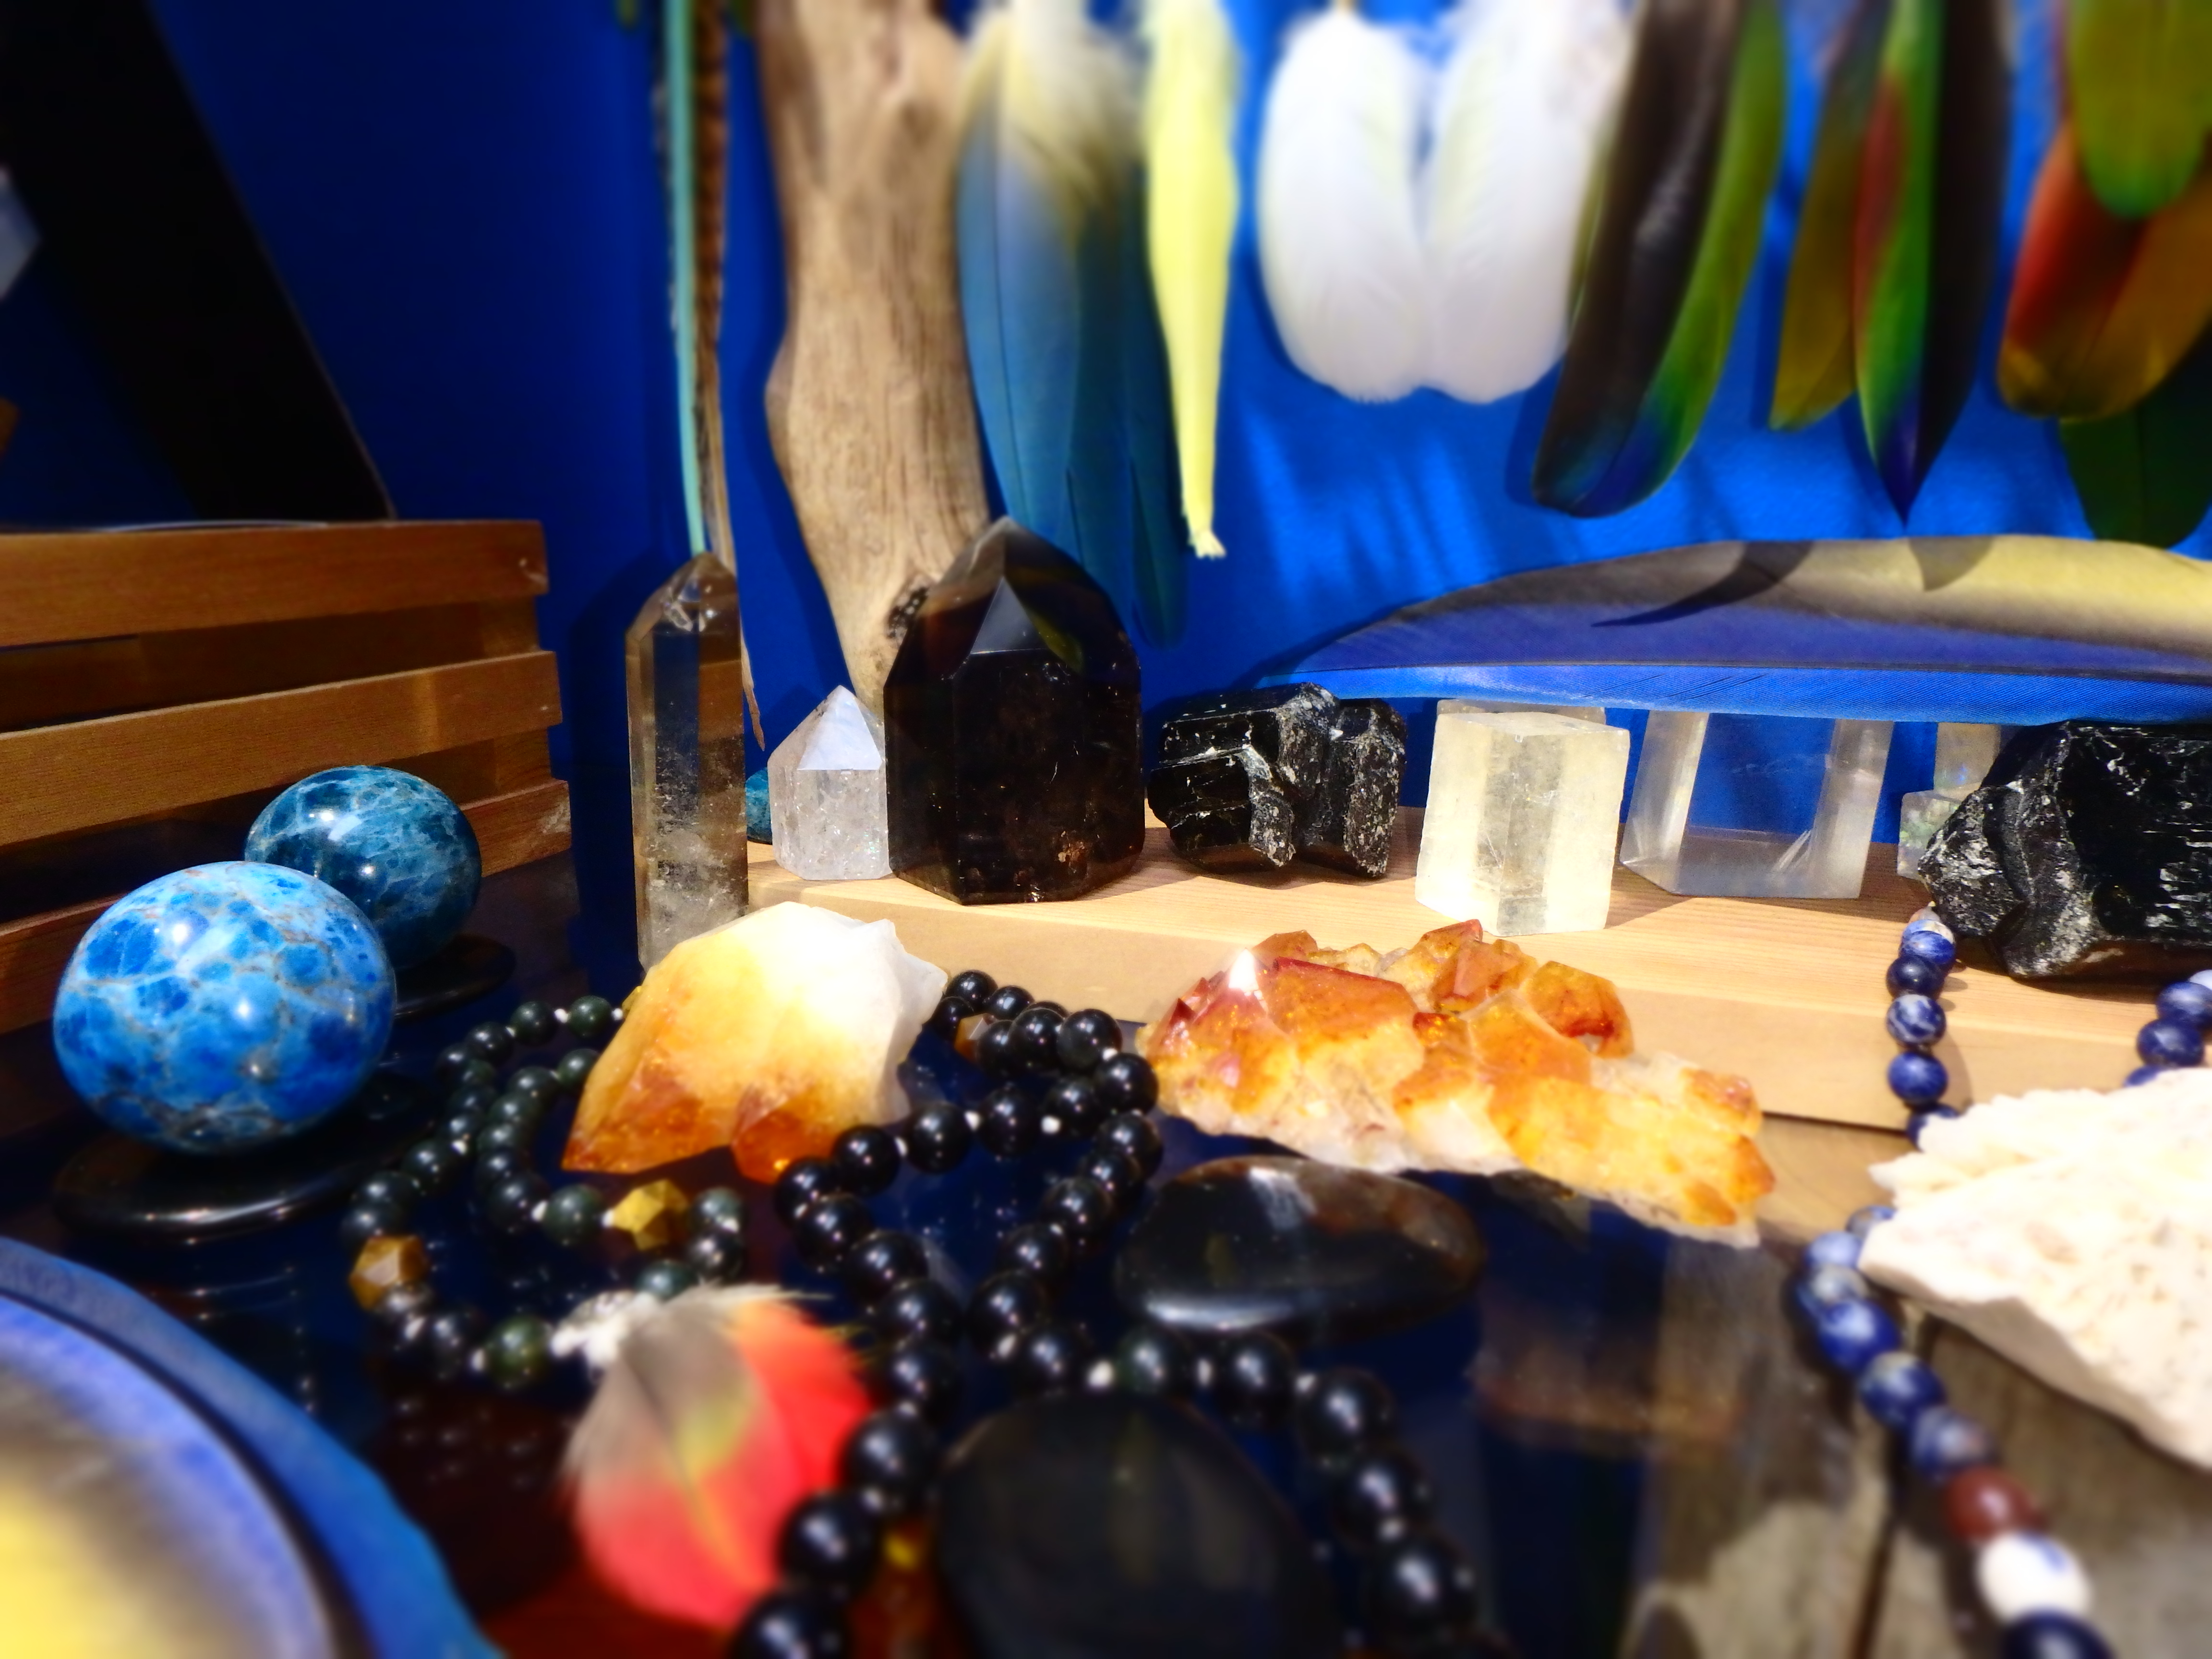 Blue Apples Studio Gabriola